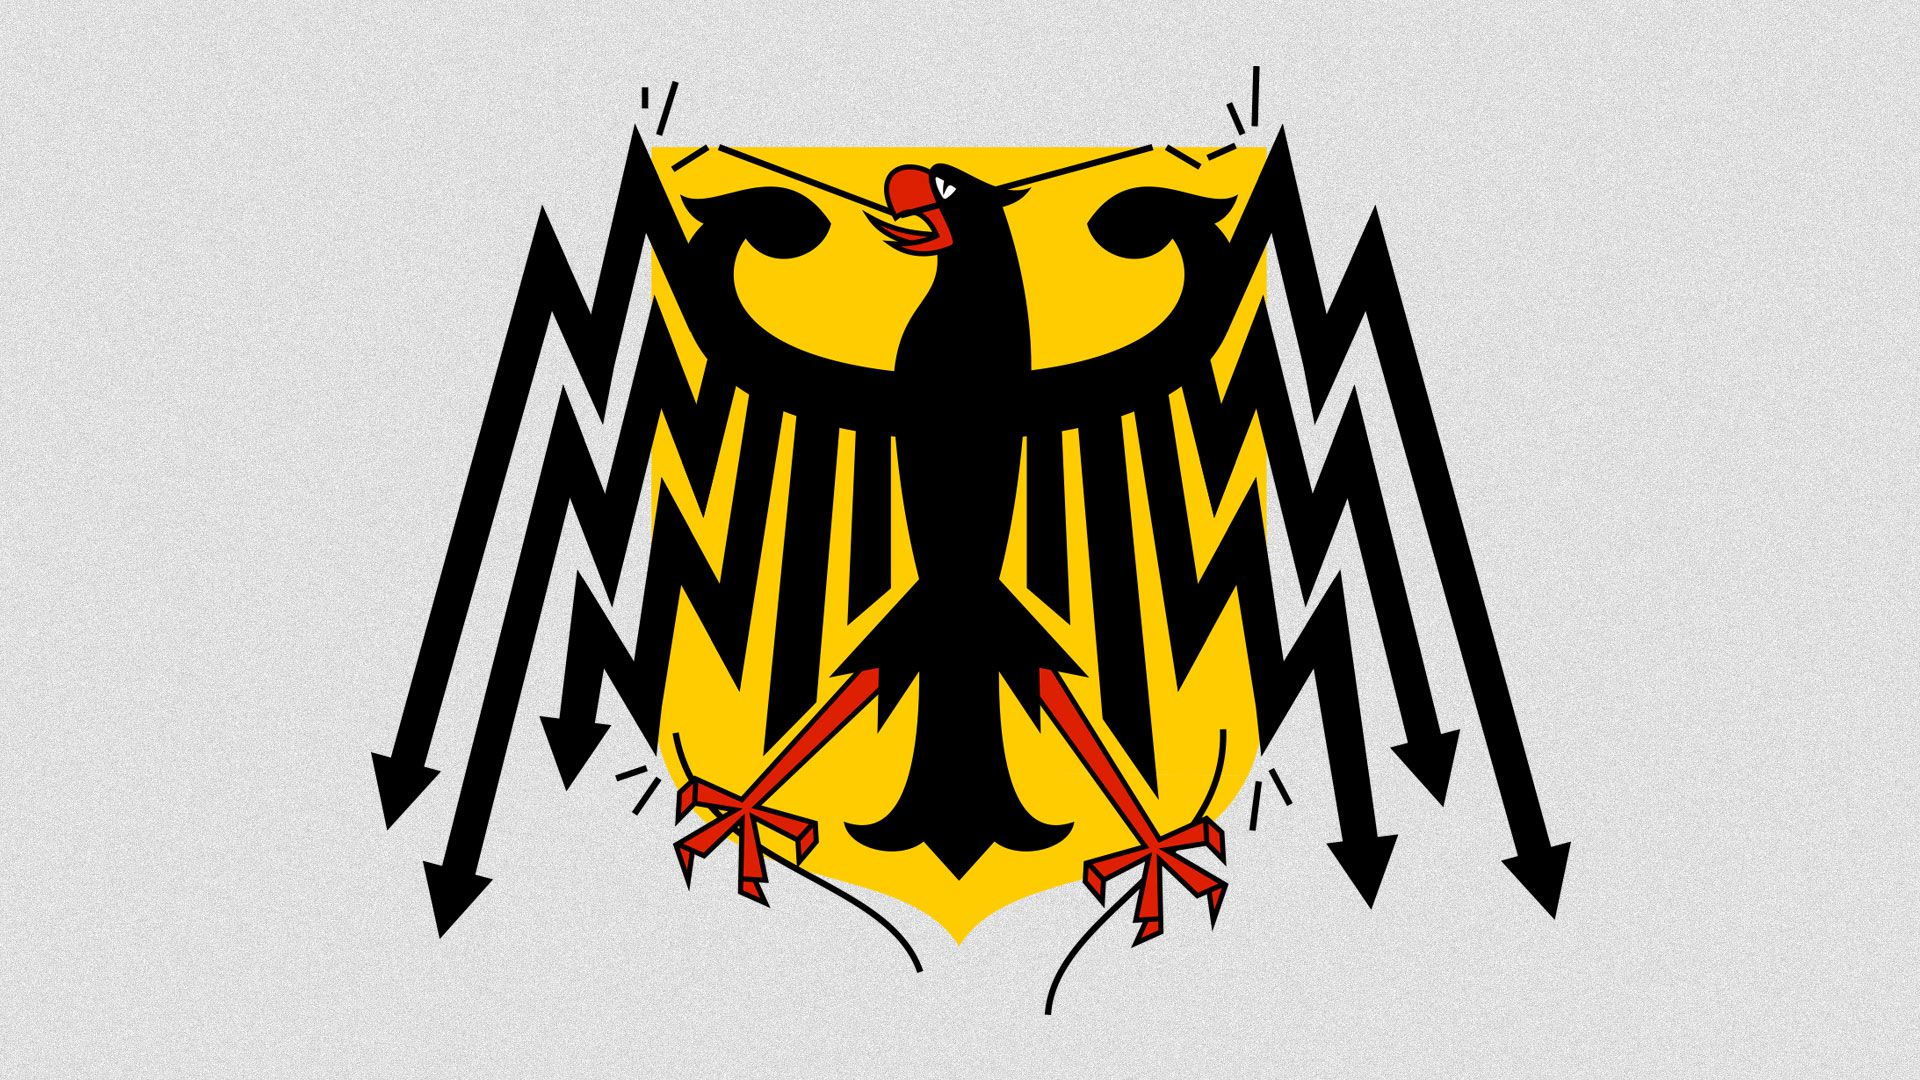 he German Bundesadler breaking out of it's shield.